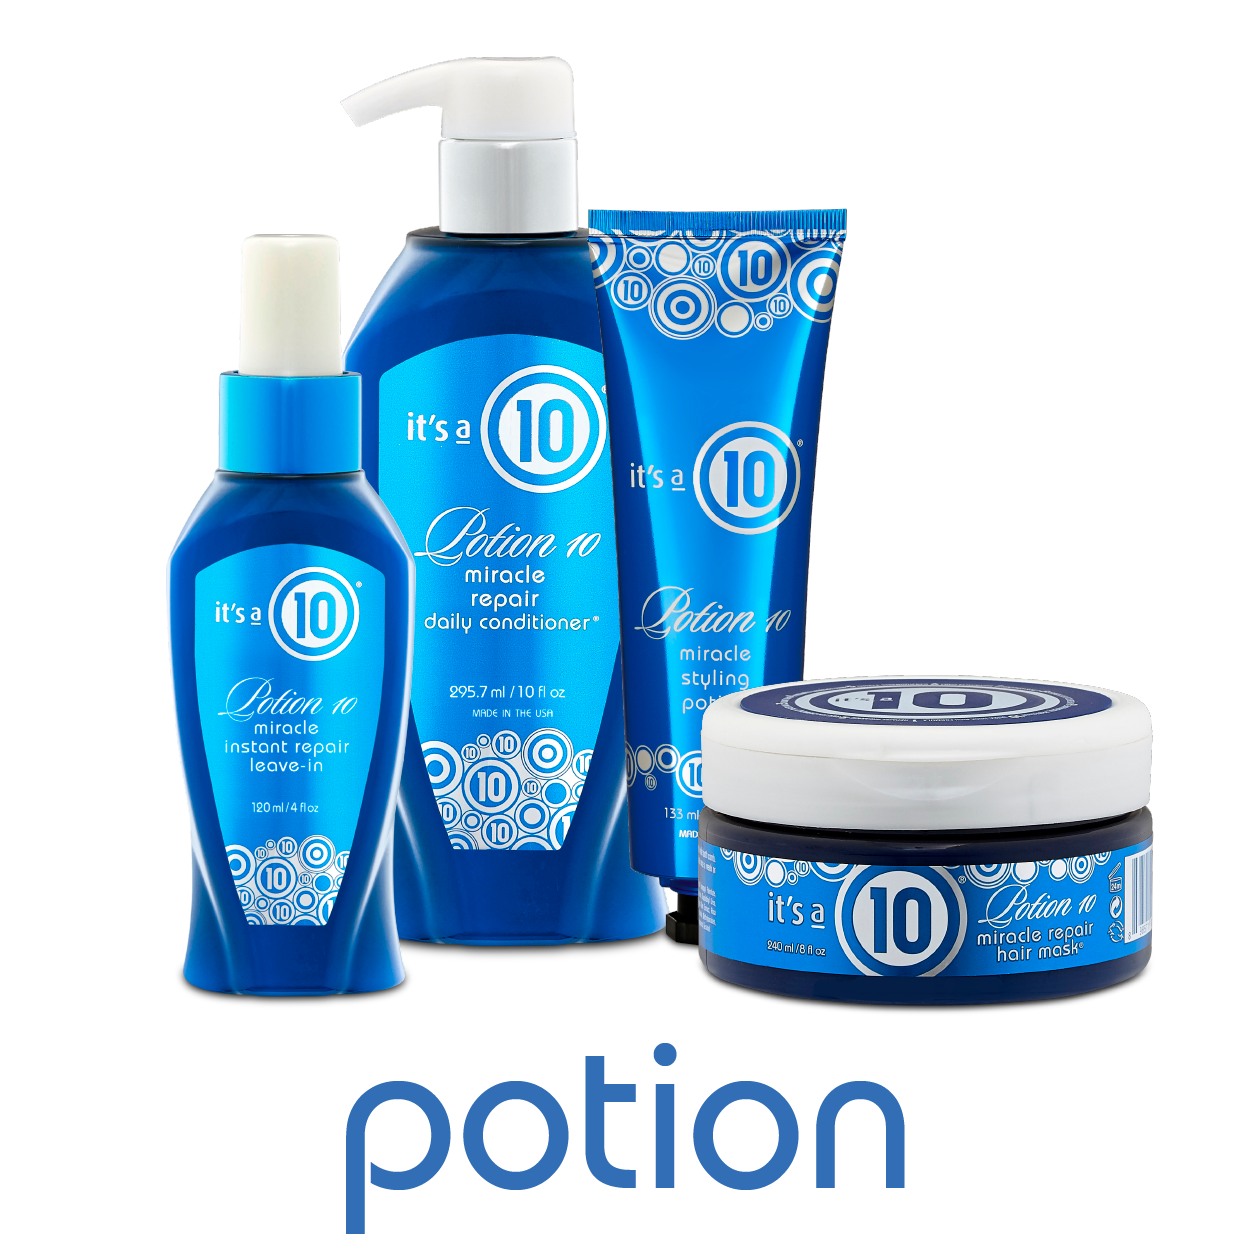 It's a 10 haircare POTION 10 COLLECTION